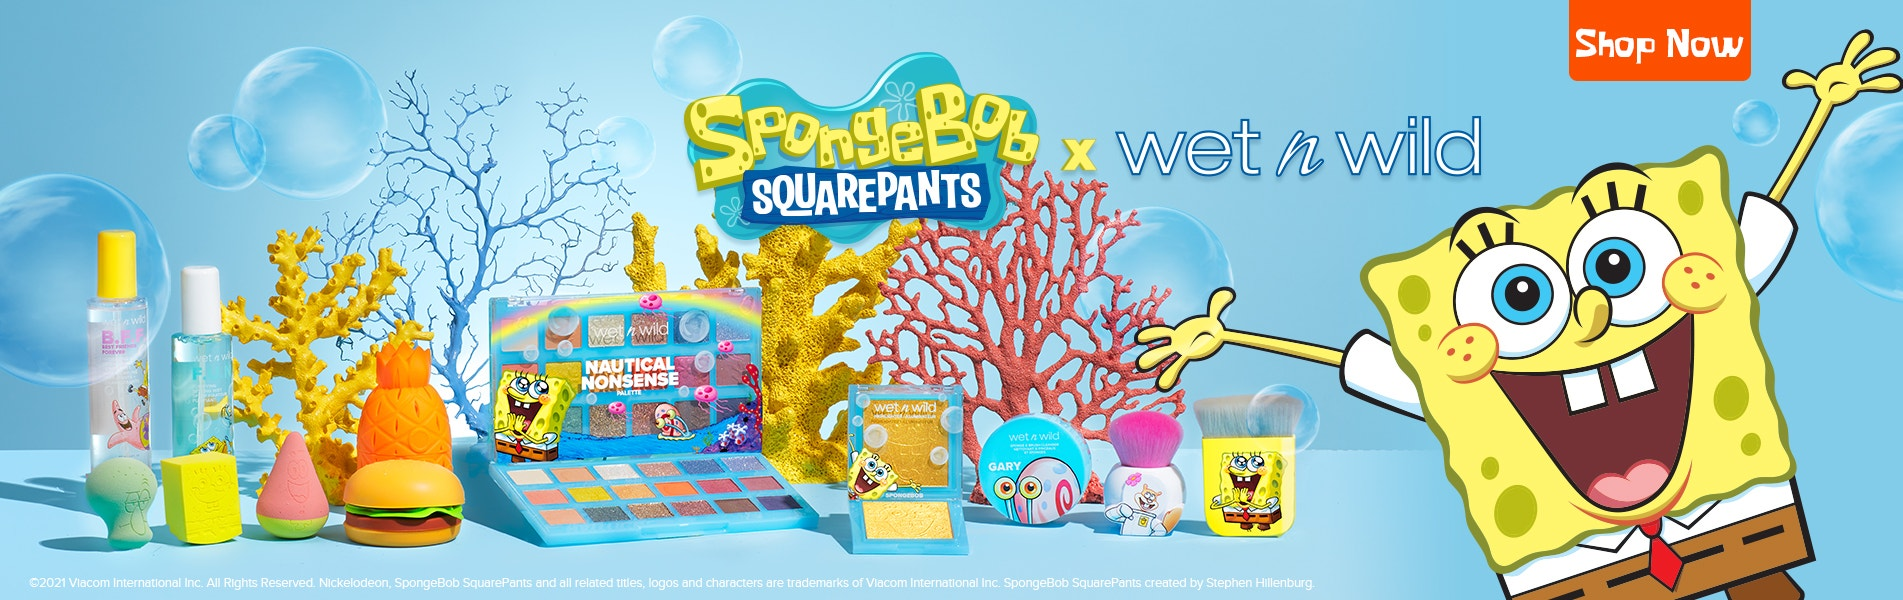 SpongeBob Squarepants X wet n wild | Shop Now | wet n wild | Products displayed with corals and blue background